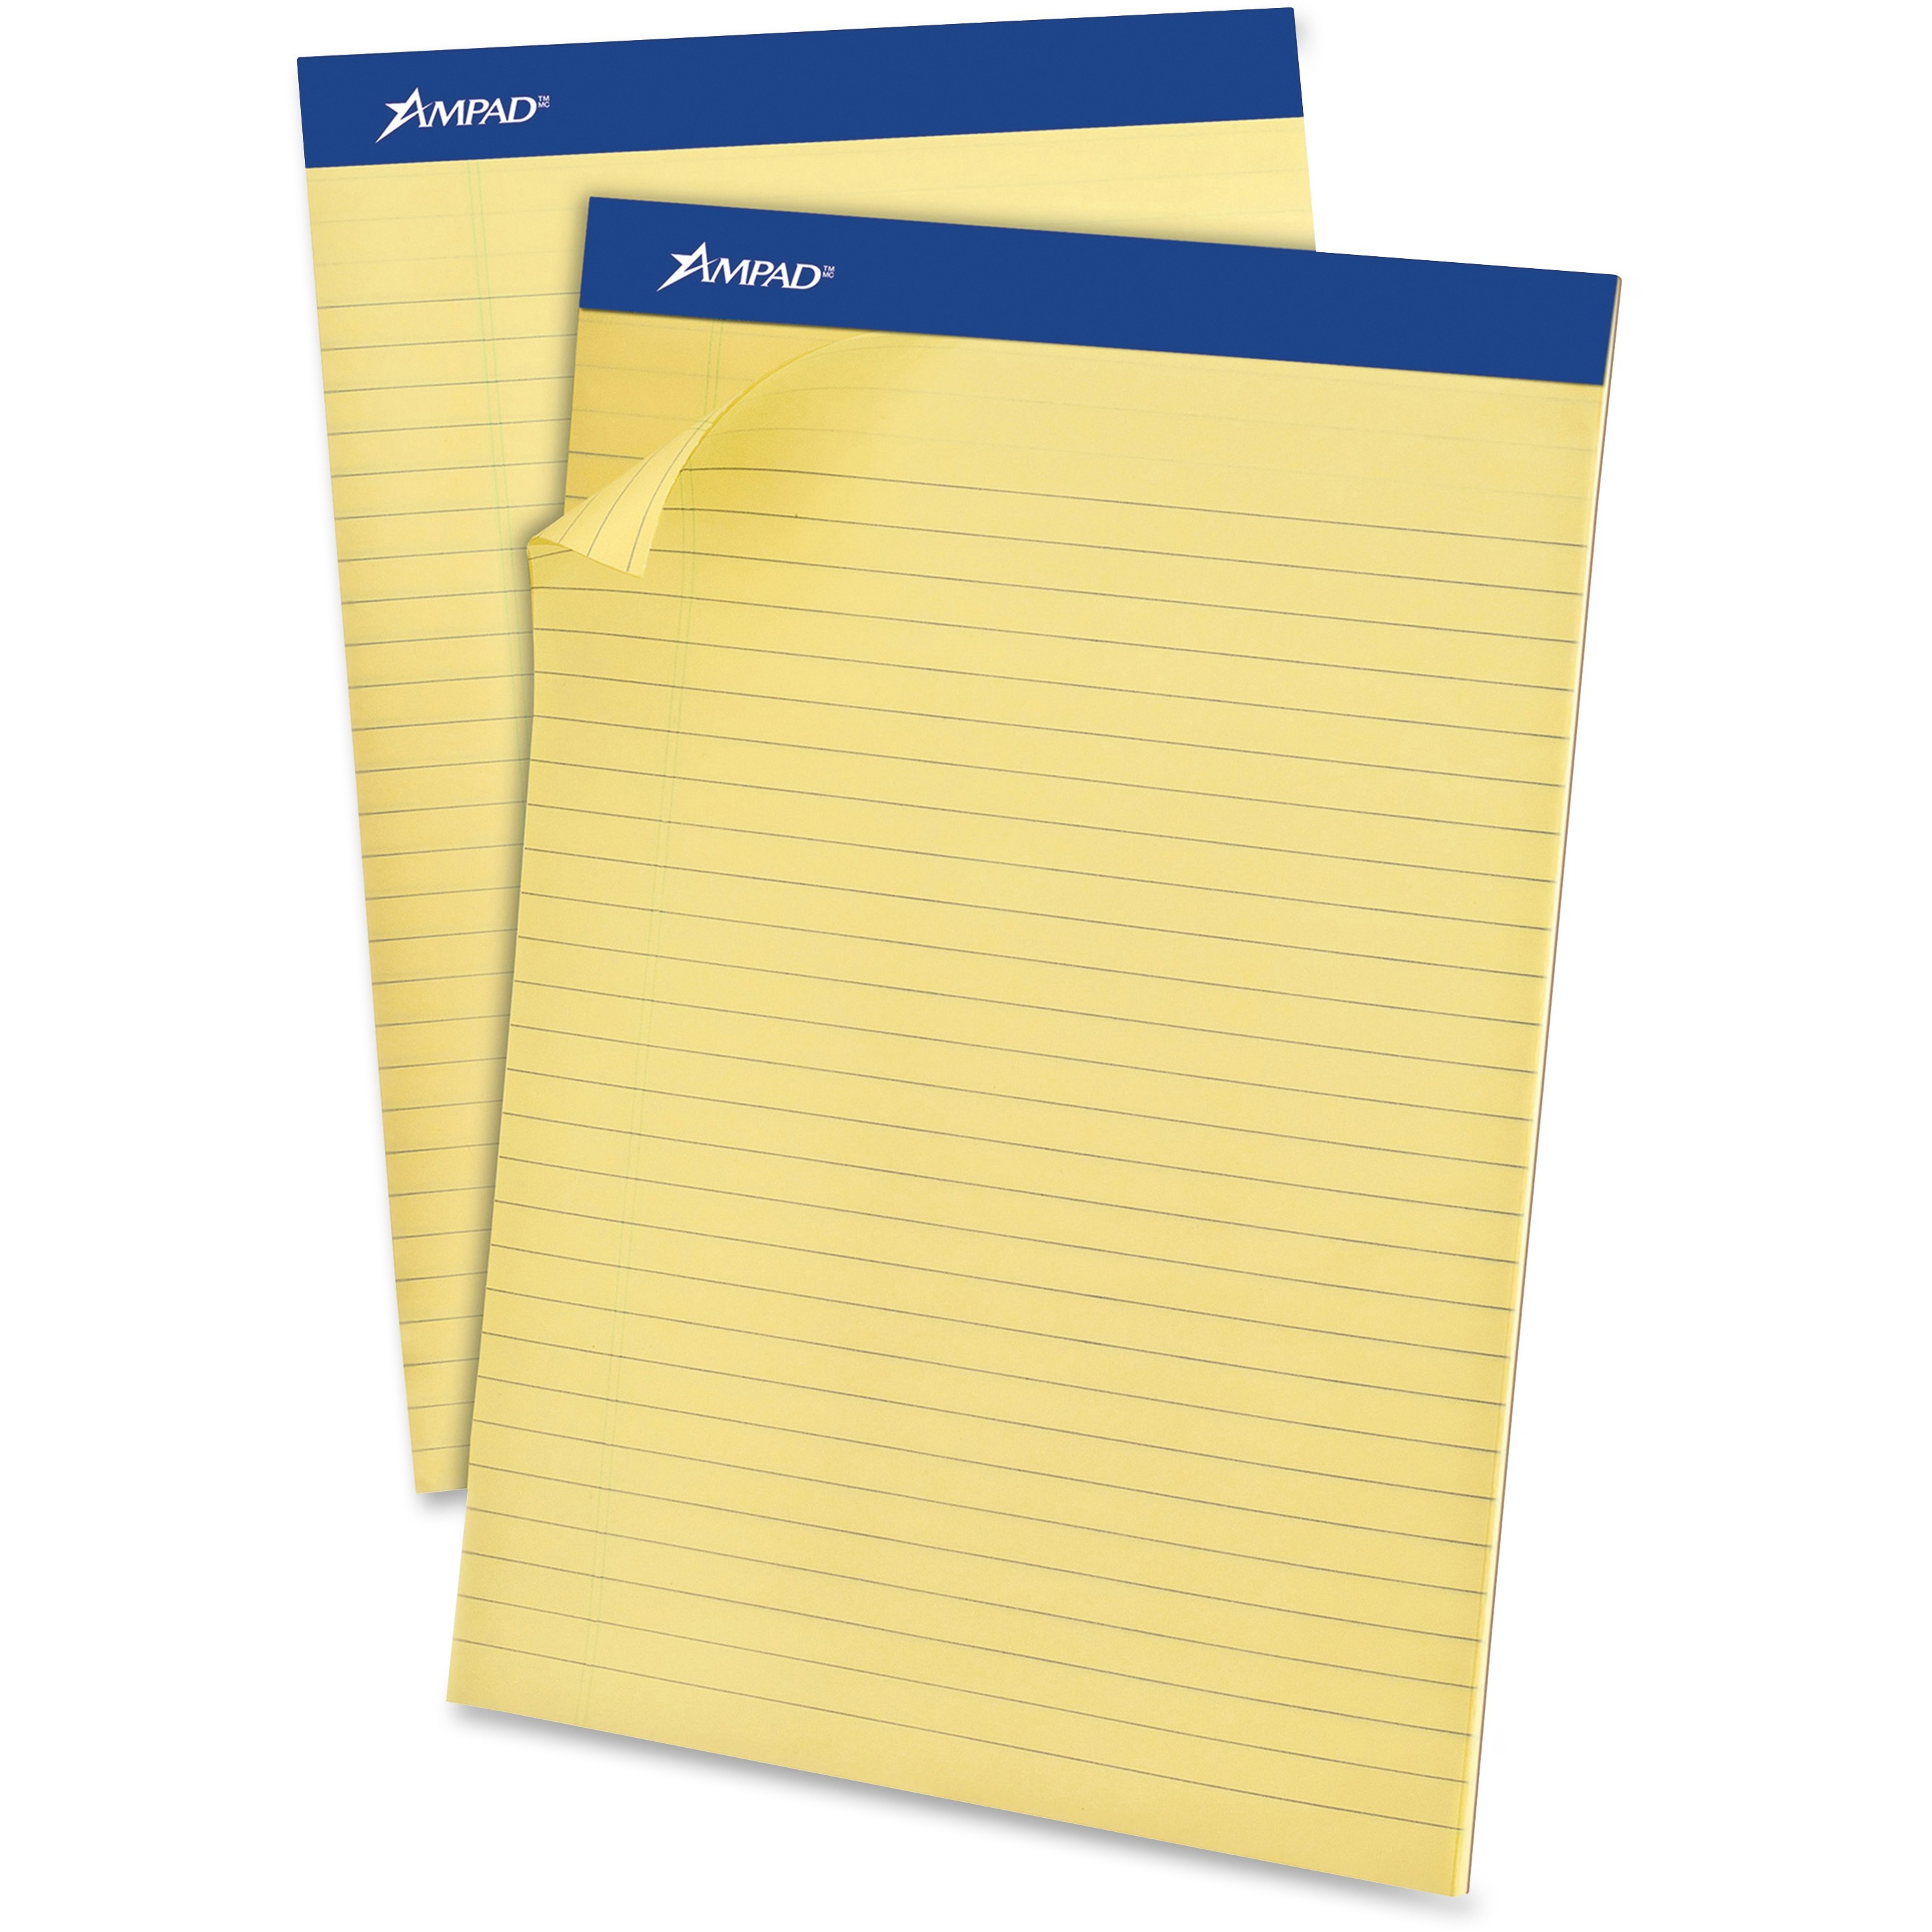 Recycled Writing Pads, 8 1/2 x 11 3/4, Canary, 50 Sheets, Dozen